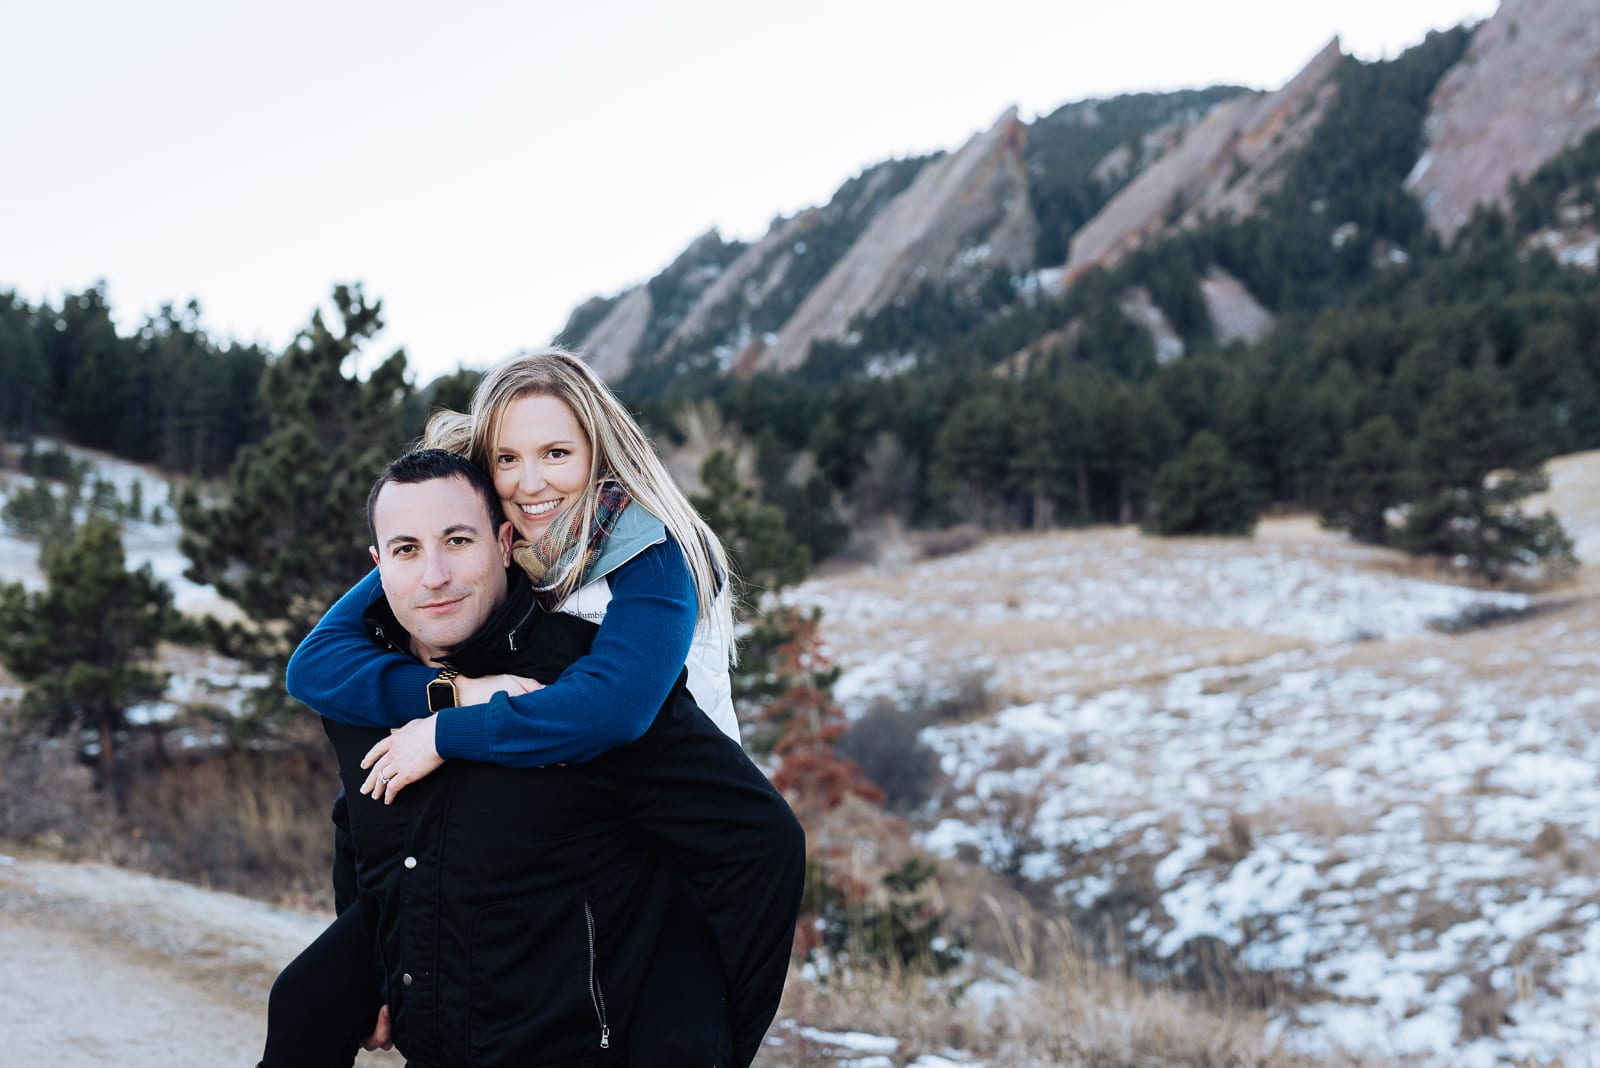 Engagement Photo Tips | Engagement Photography | Chautauqua | From the Hip Photo